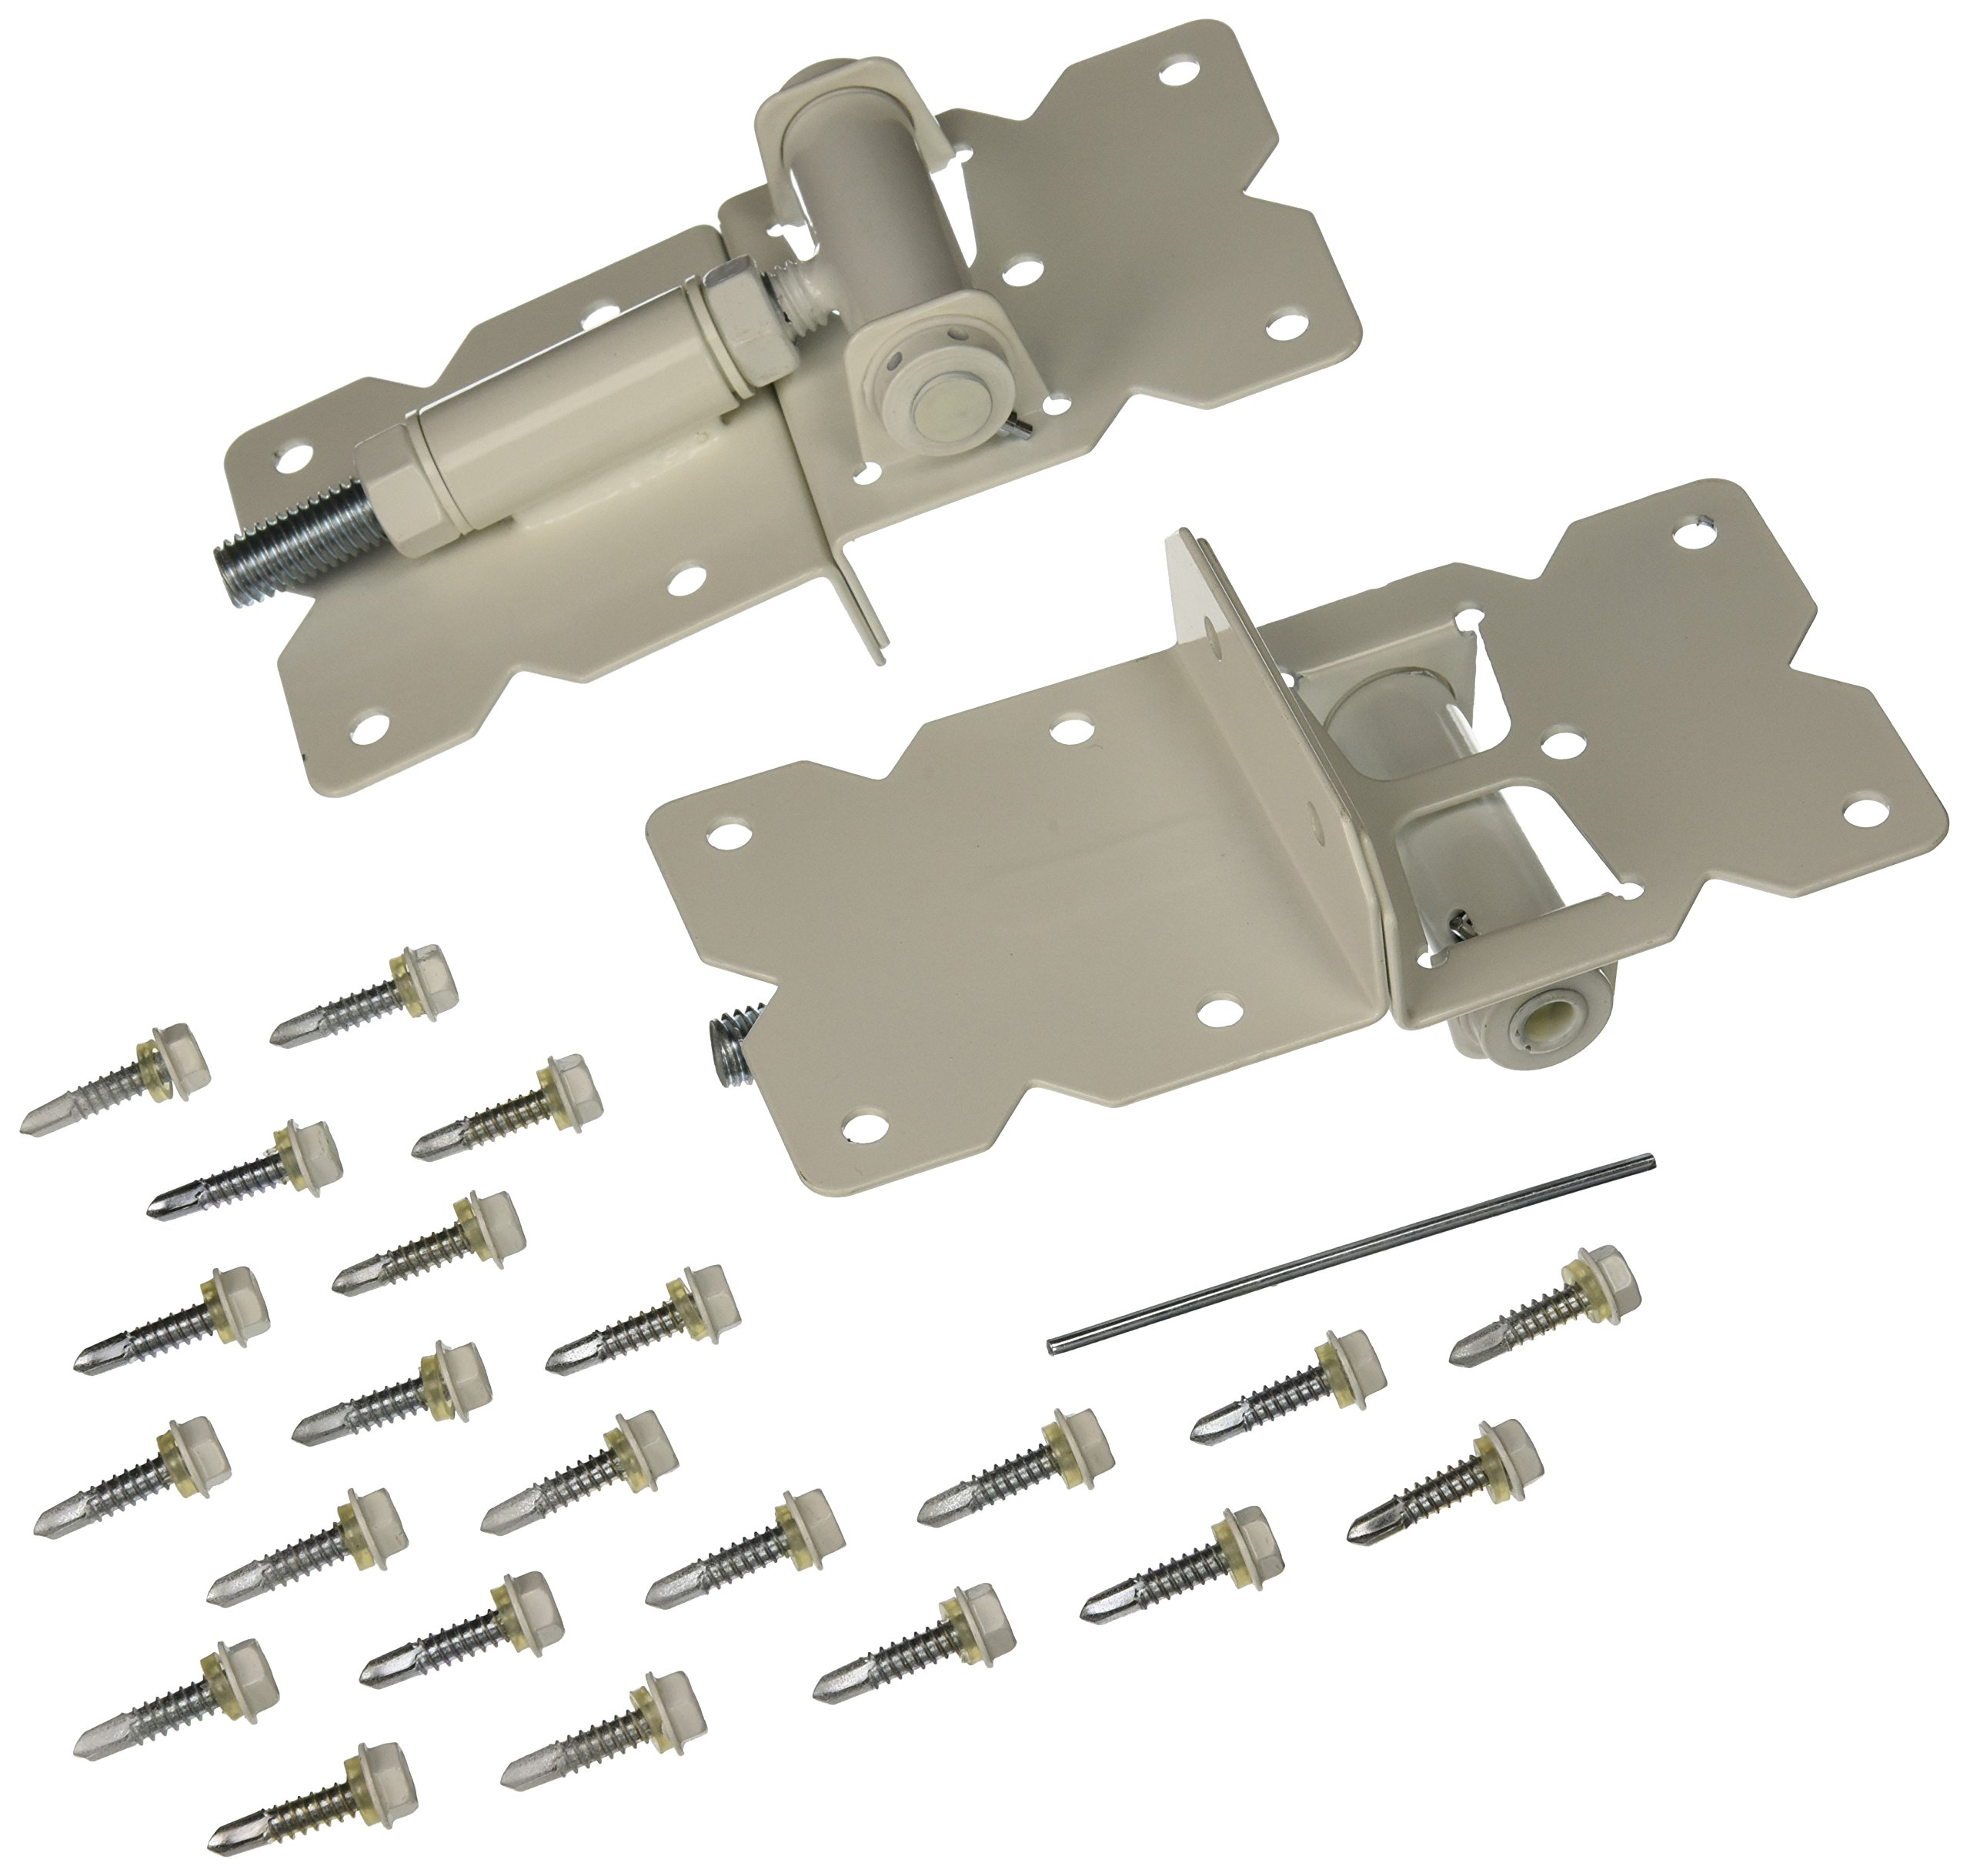 Self Closing Gate Hinge 2-Pack (White Finish)   The Best Set of Vinyl Fence Gate Hinges   Adjustable to Stop Gate Dragging   Heavy Duty White Gate Hinges For Vinyl Fences   In Business 20 Years! (White)